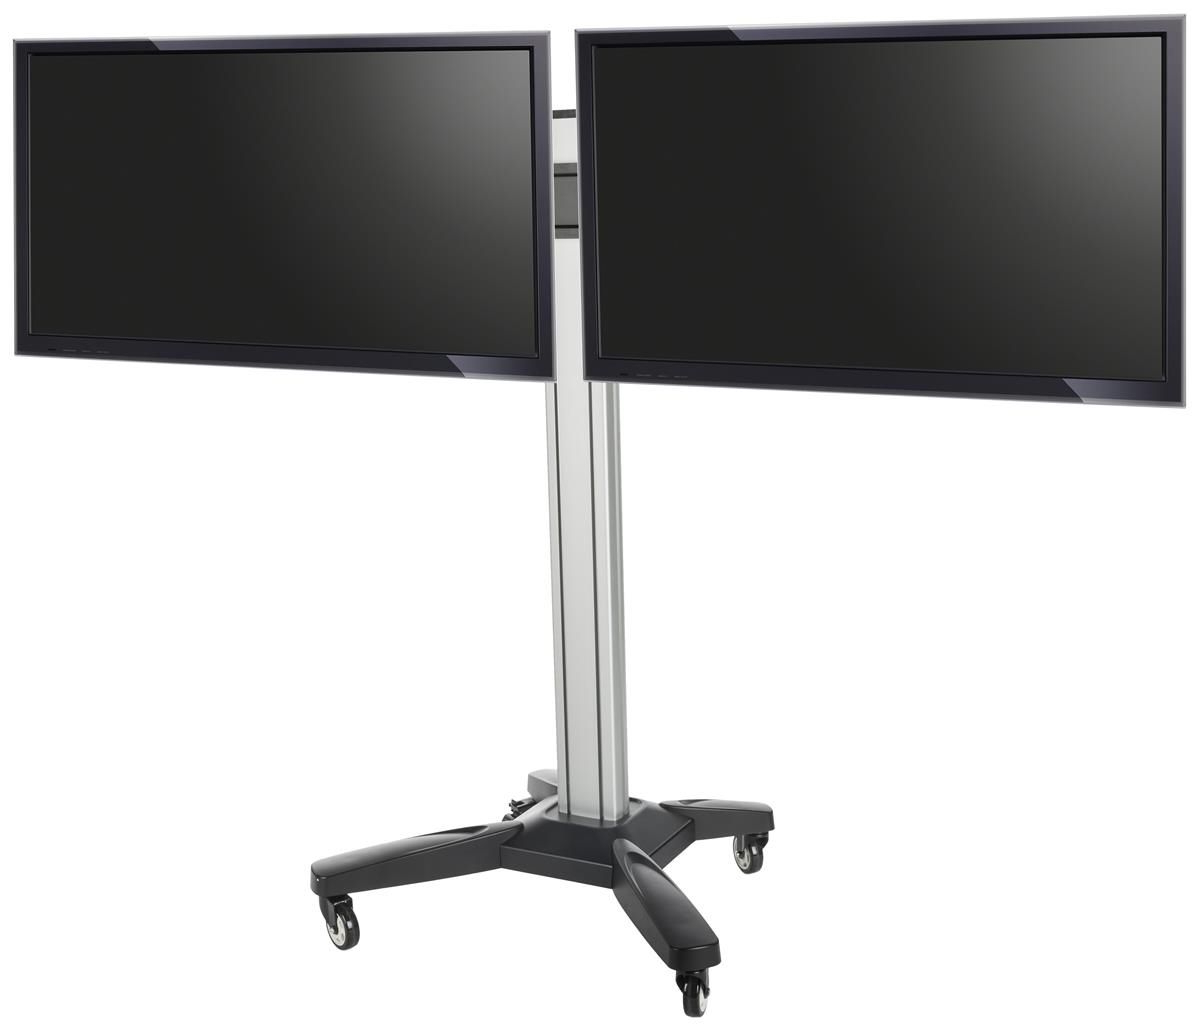 "Dual Tv Stands Within Most Recently Released Dual Tv Stand, Fits (2) 37"" 60"" Monitors Sideside, Wheeled Base (Gallery 6 of 20)"